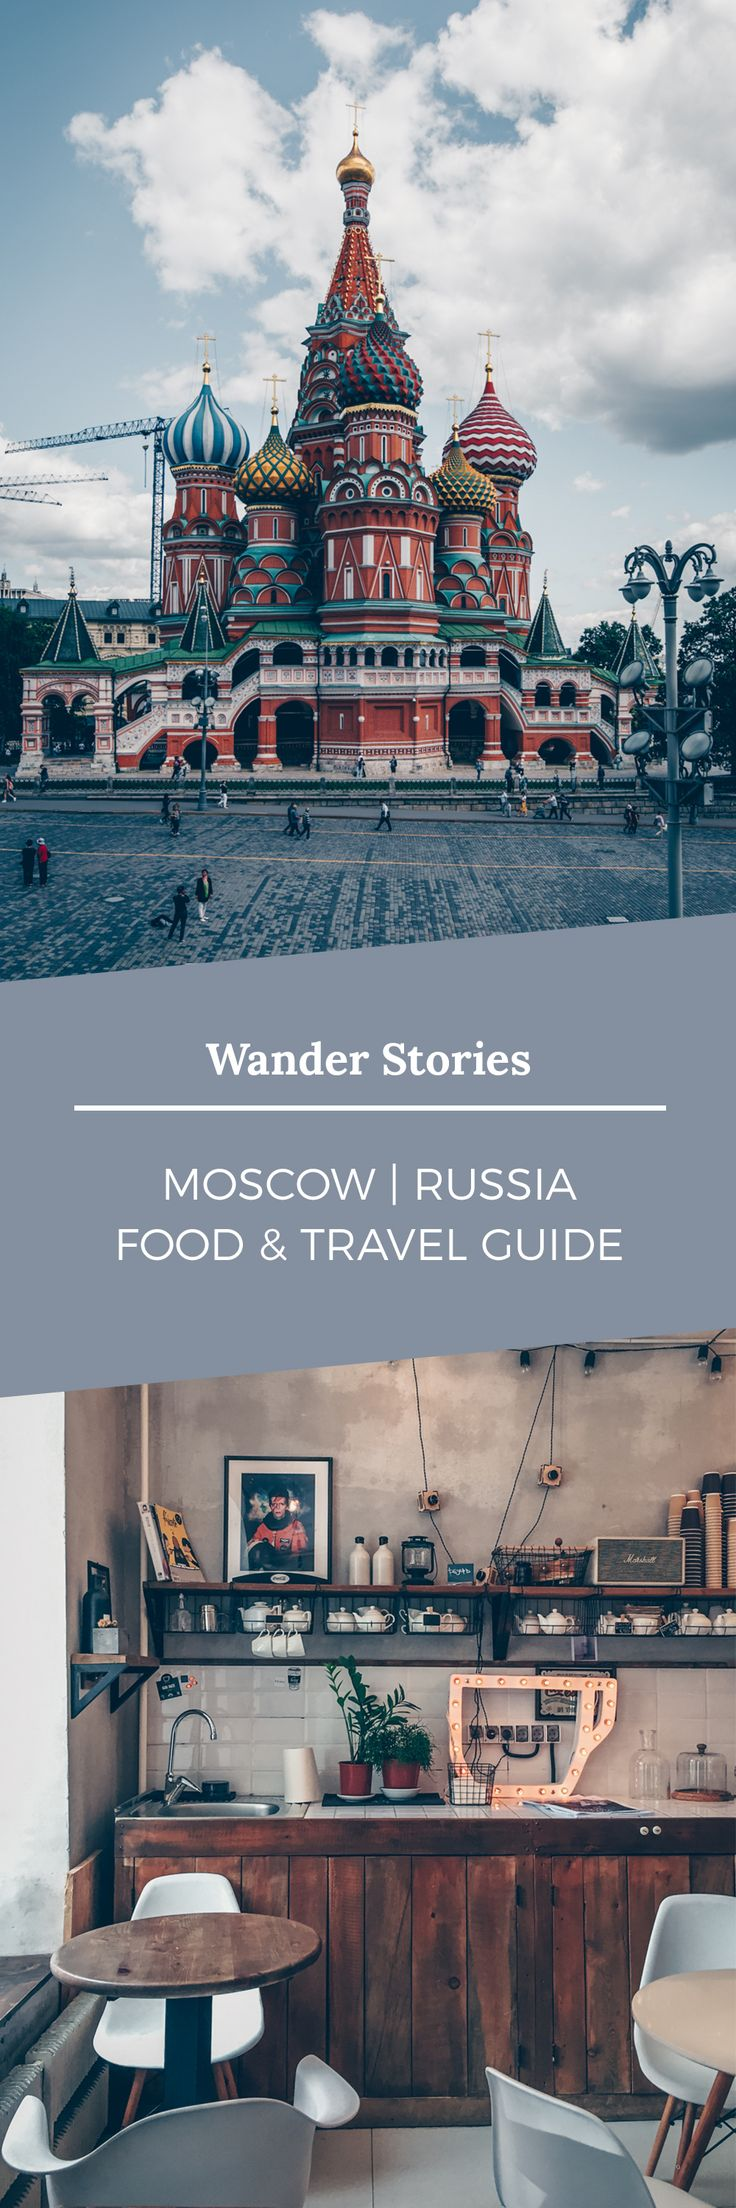 Moscow Food & Travel Guide | Wander Stories by Kati of black.white.vivid. - A quick guide to Moscow, Russia with food, sightseeing and shopping tips - travel photography, moody travel photography, moody photography, Moscow city, moscow food, moscow restaurant, russian food in moscow, Moscow coffeeshops, cold pressed juices moscow, healthy food moscow, ceramics moscow